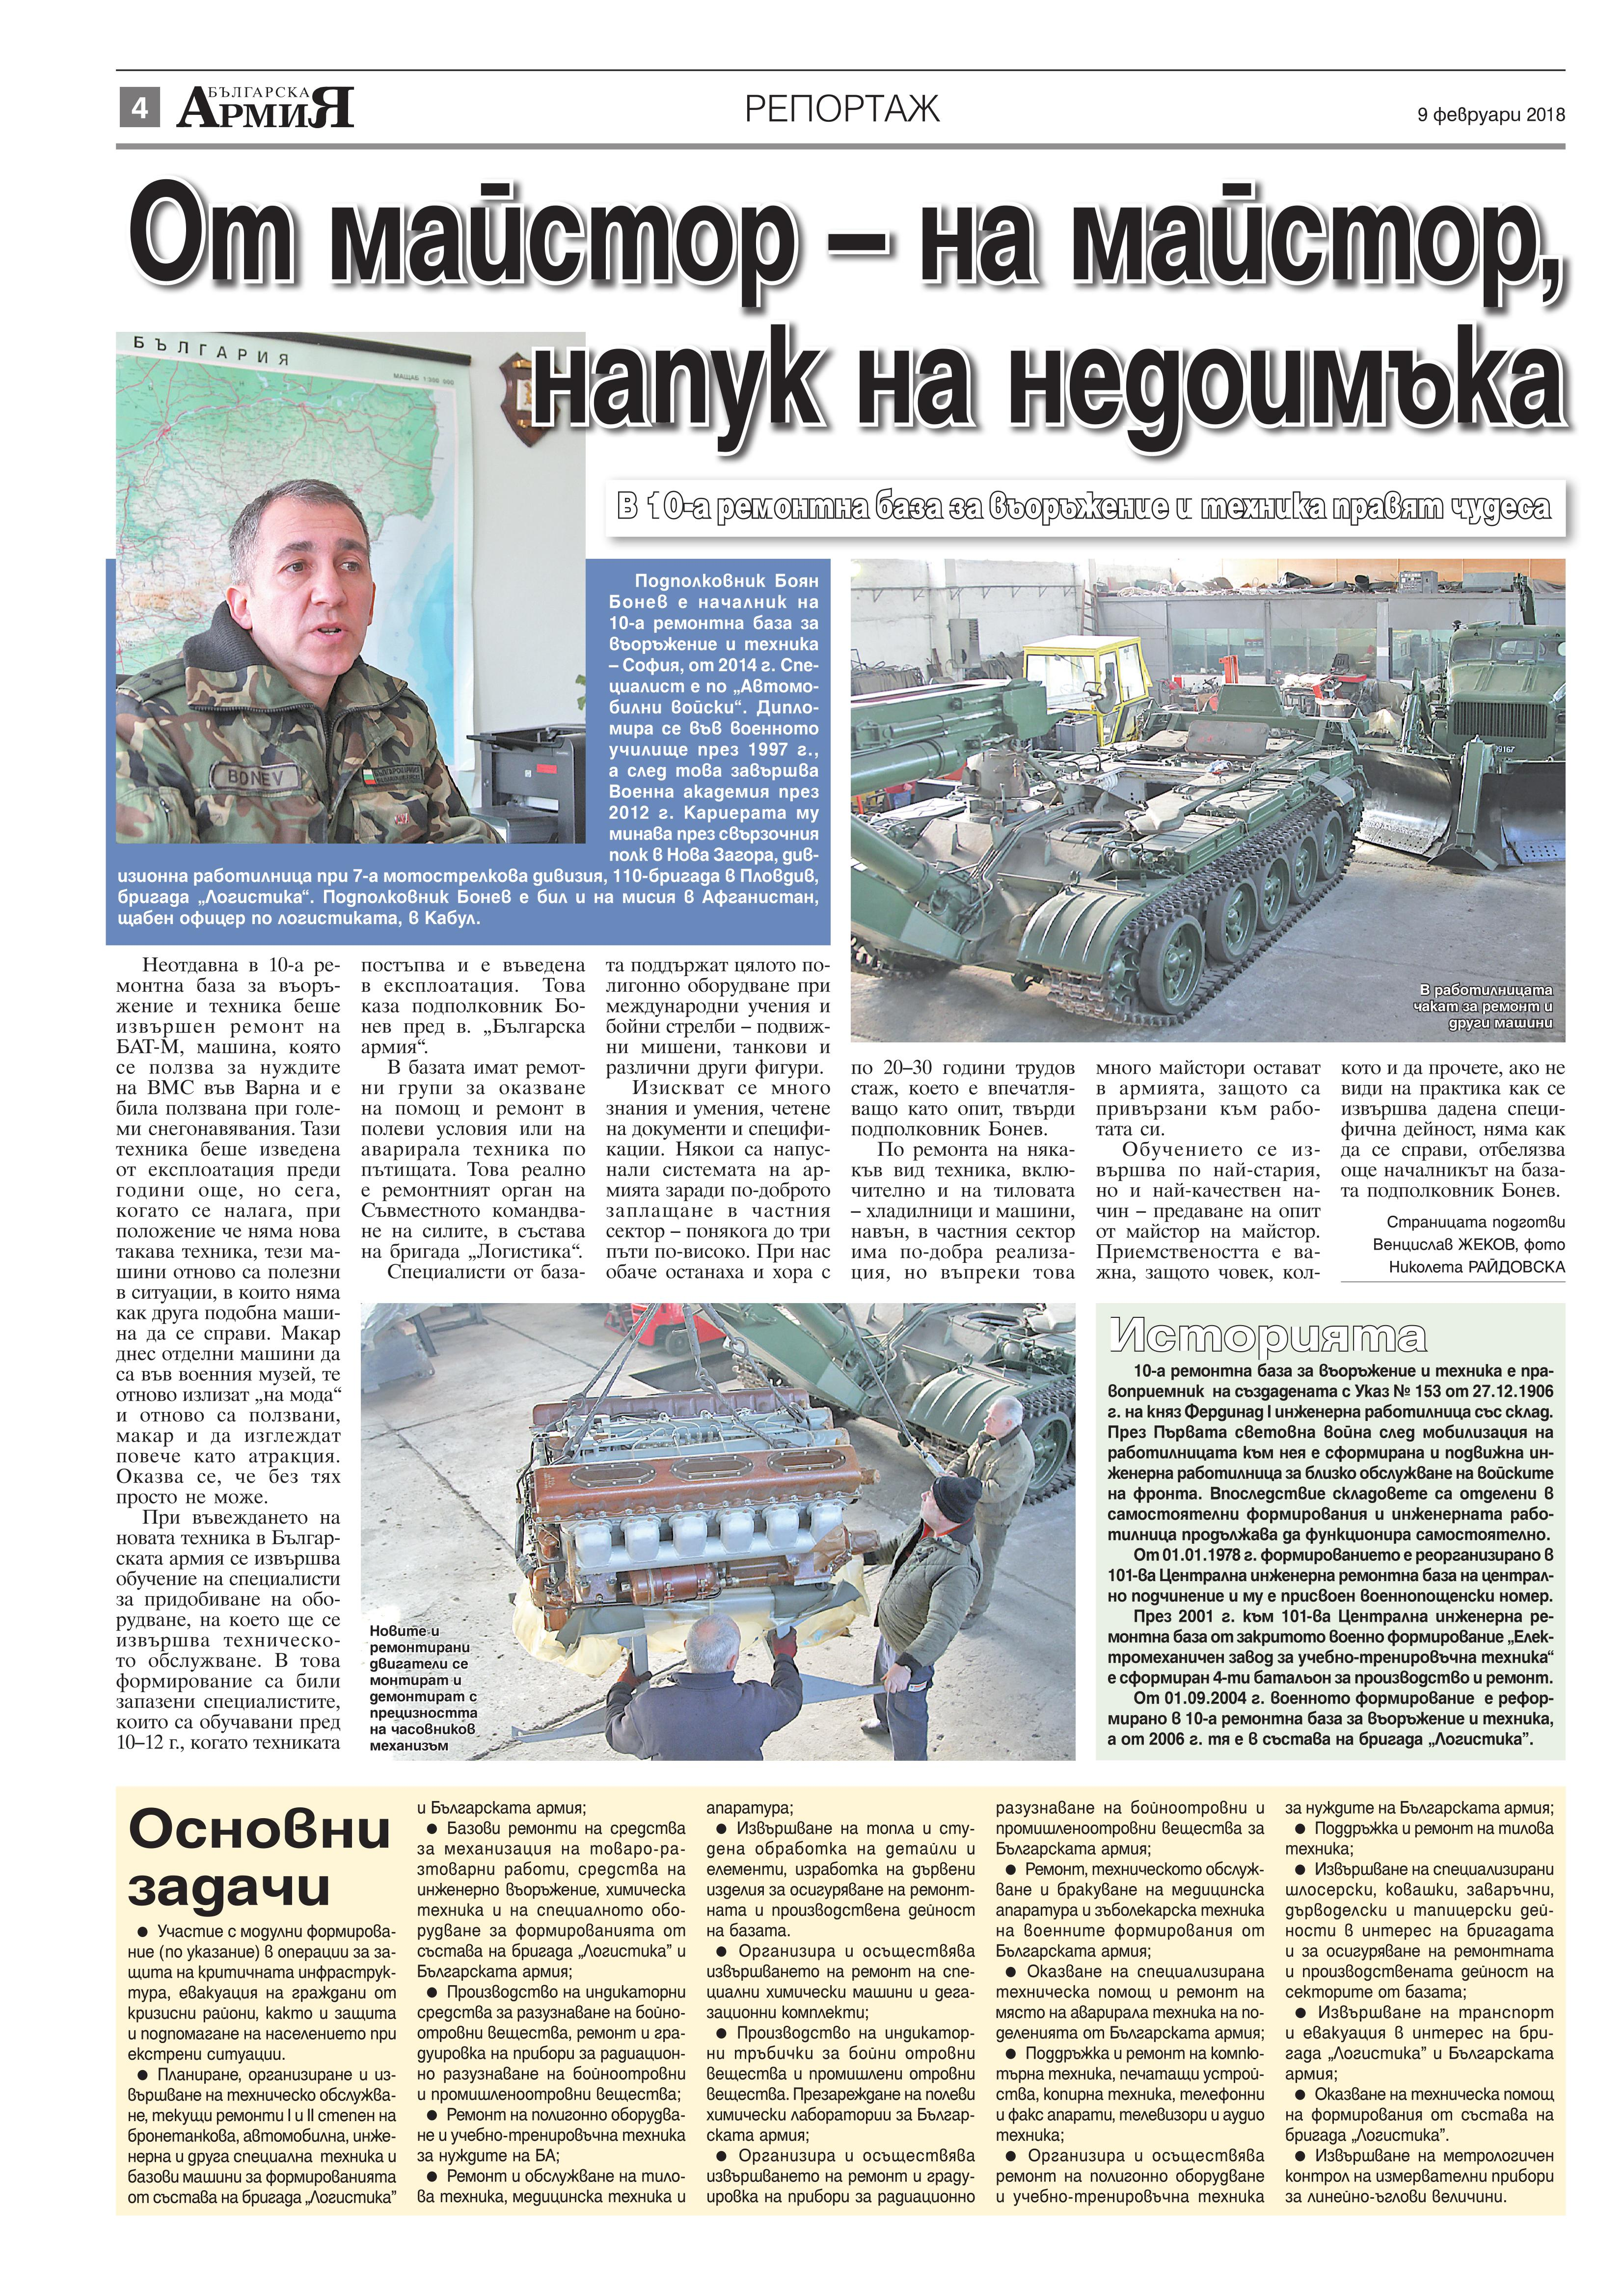 http://armymedia.bg/wp-content/uploads/2015/06/04.page1_-37.jpg